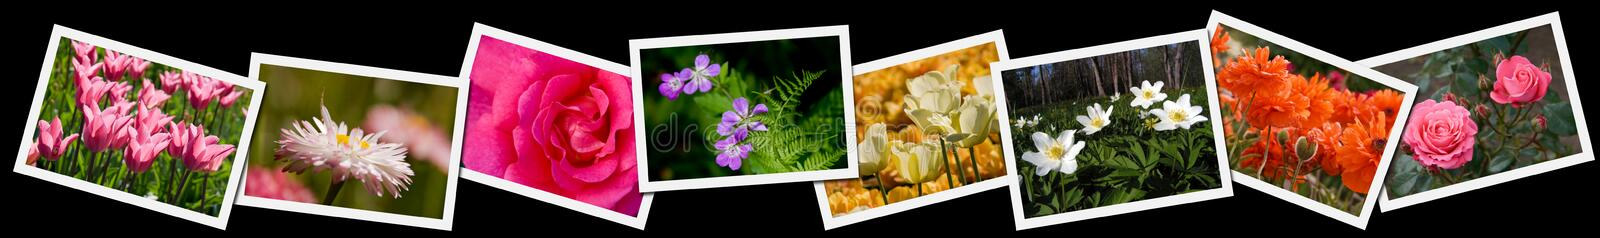 Collage of flower photographs stock illustration